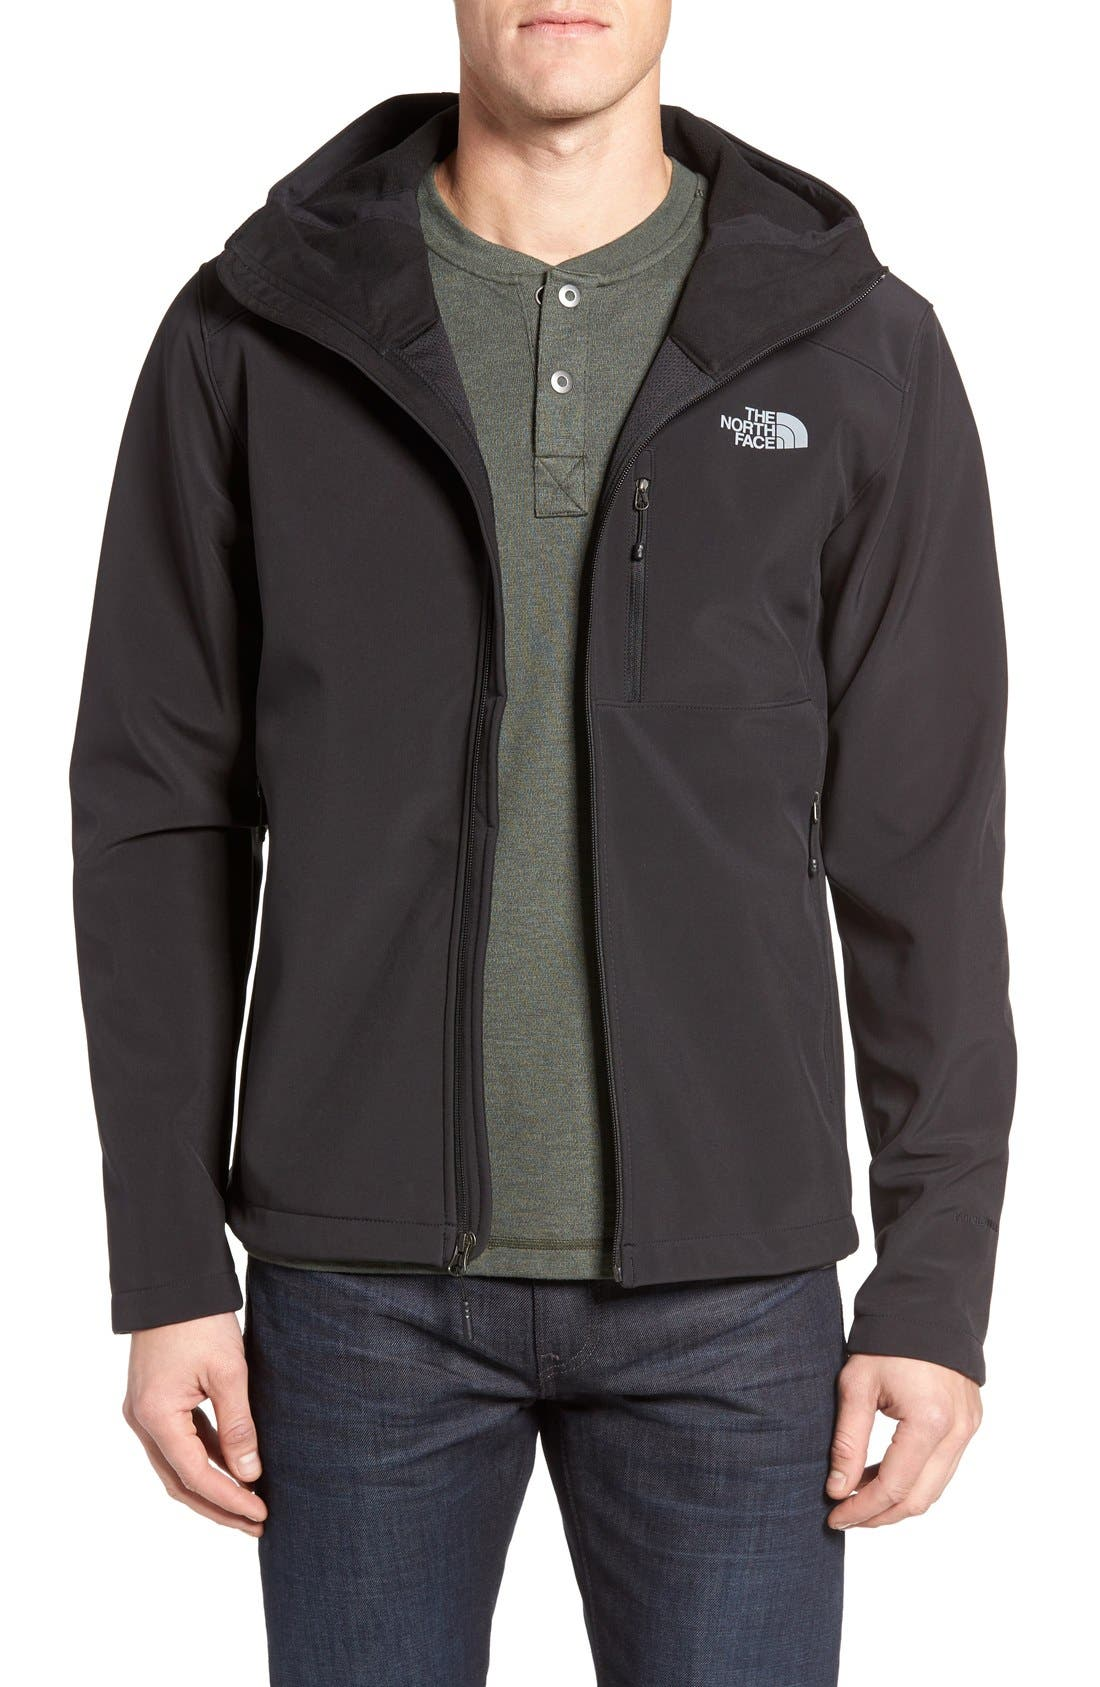 Main Image - The North Face 'Apex Bionic 2' Water Repellent Jacket